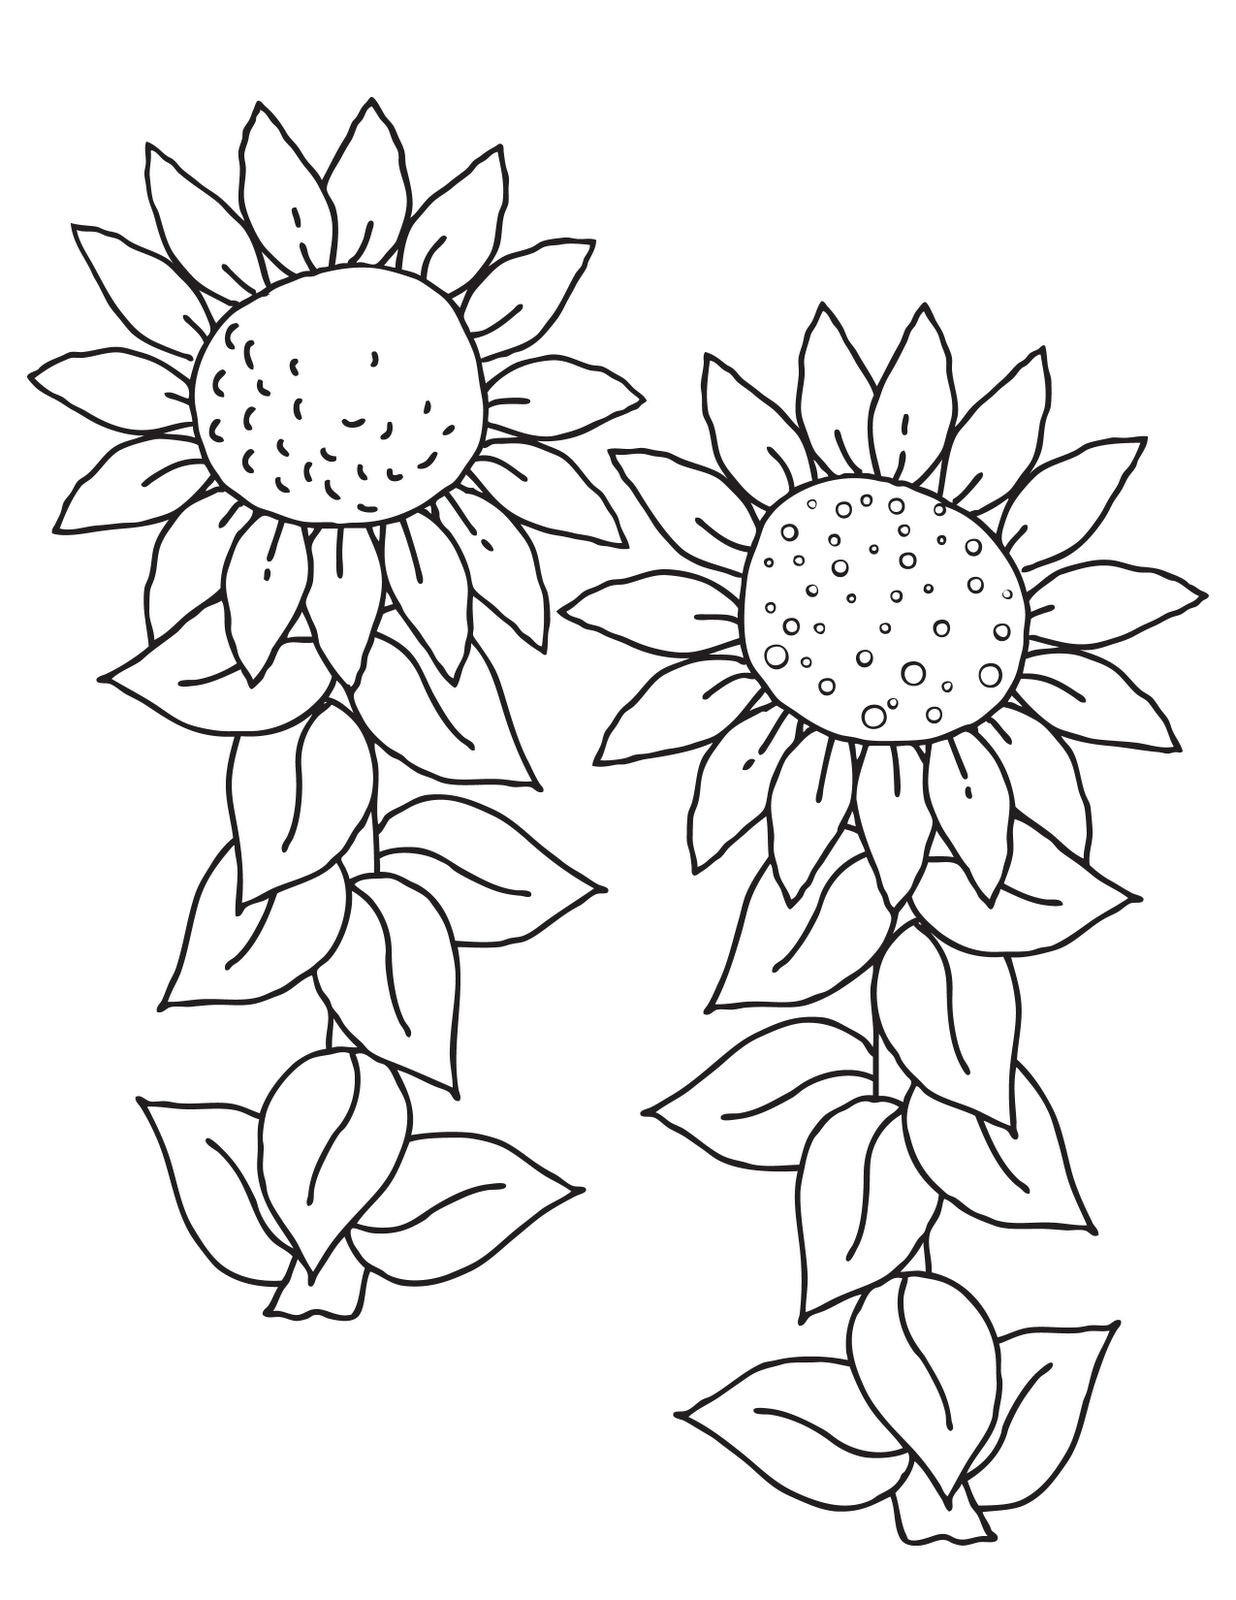 Free Digi Stamps Flower coloring pages, Sunflower